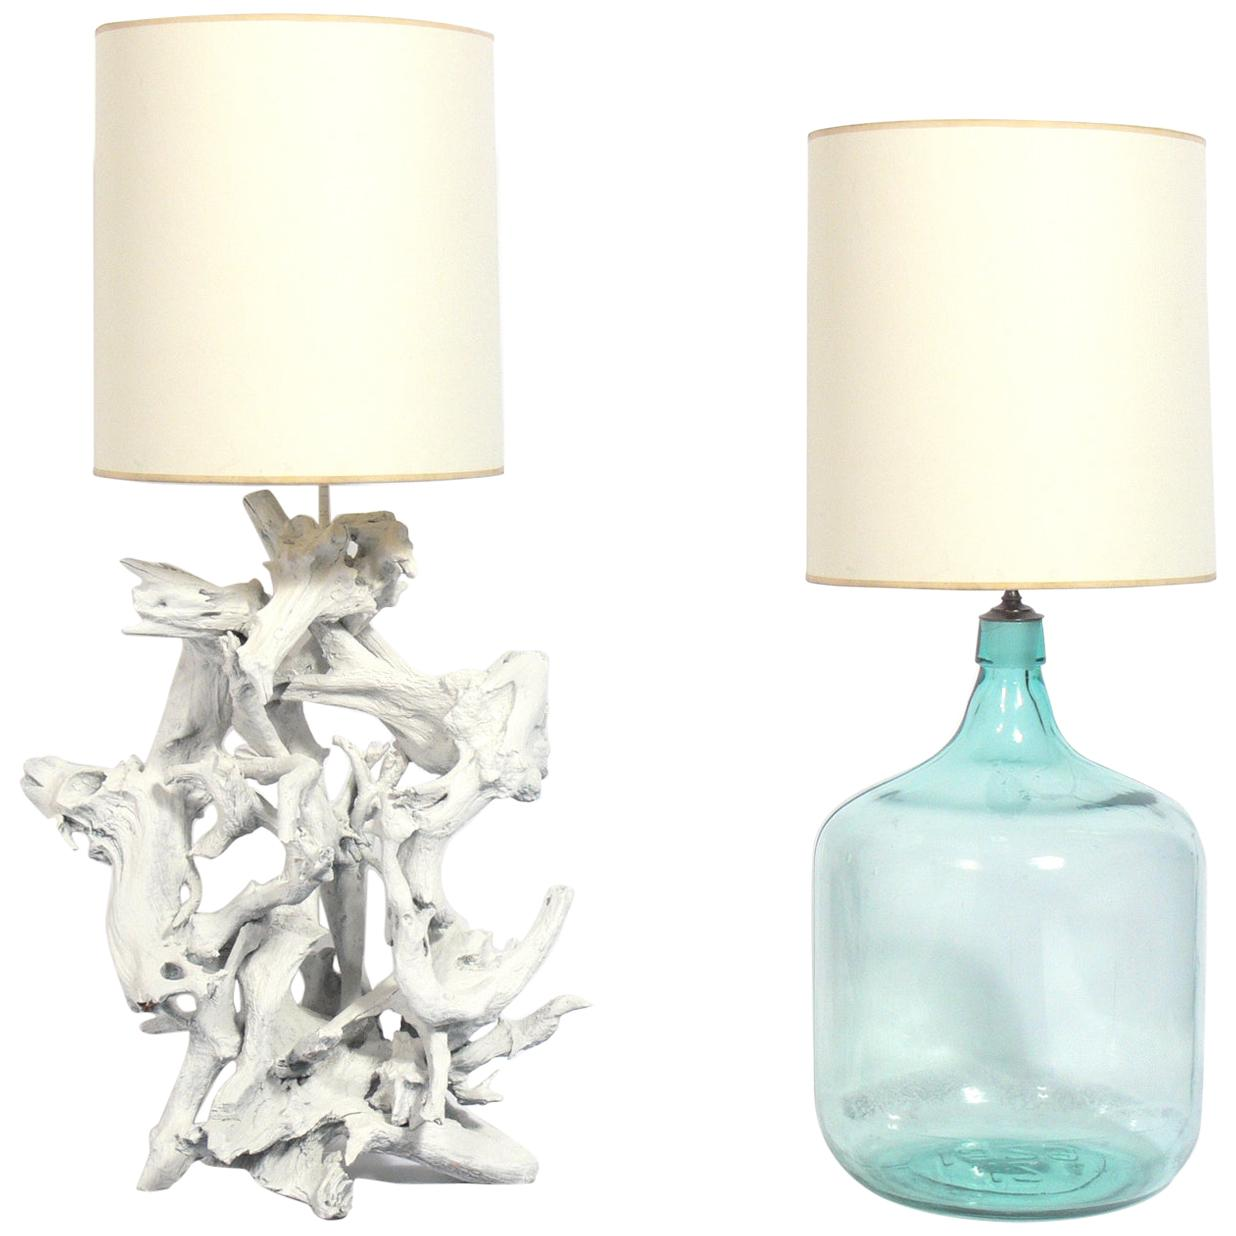 Selection of Large Scale Beach House Lamps, Driftwood and Glass